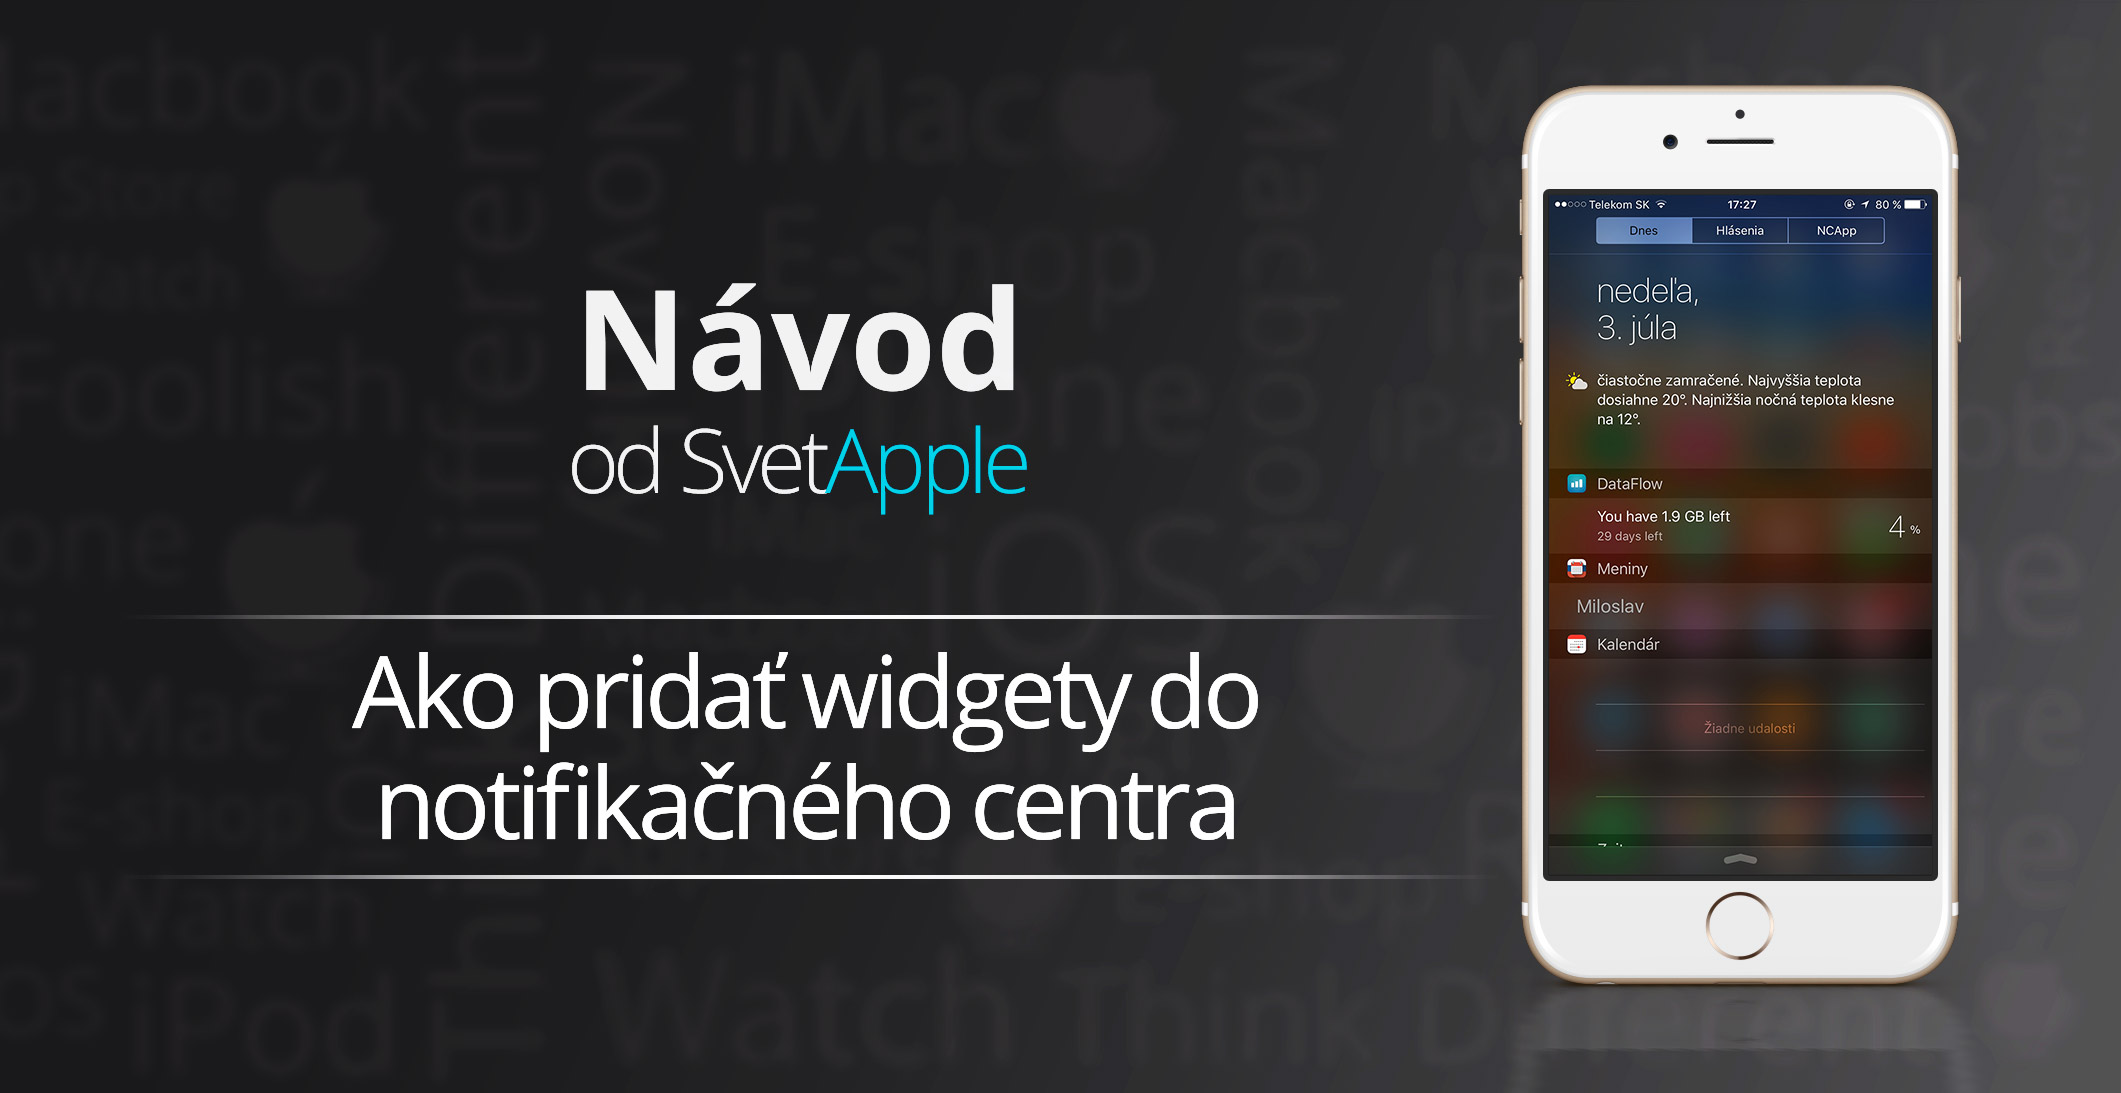 navod-iphone-widgety-svetapple